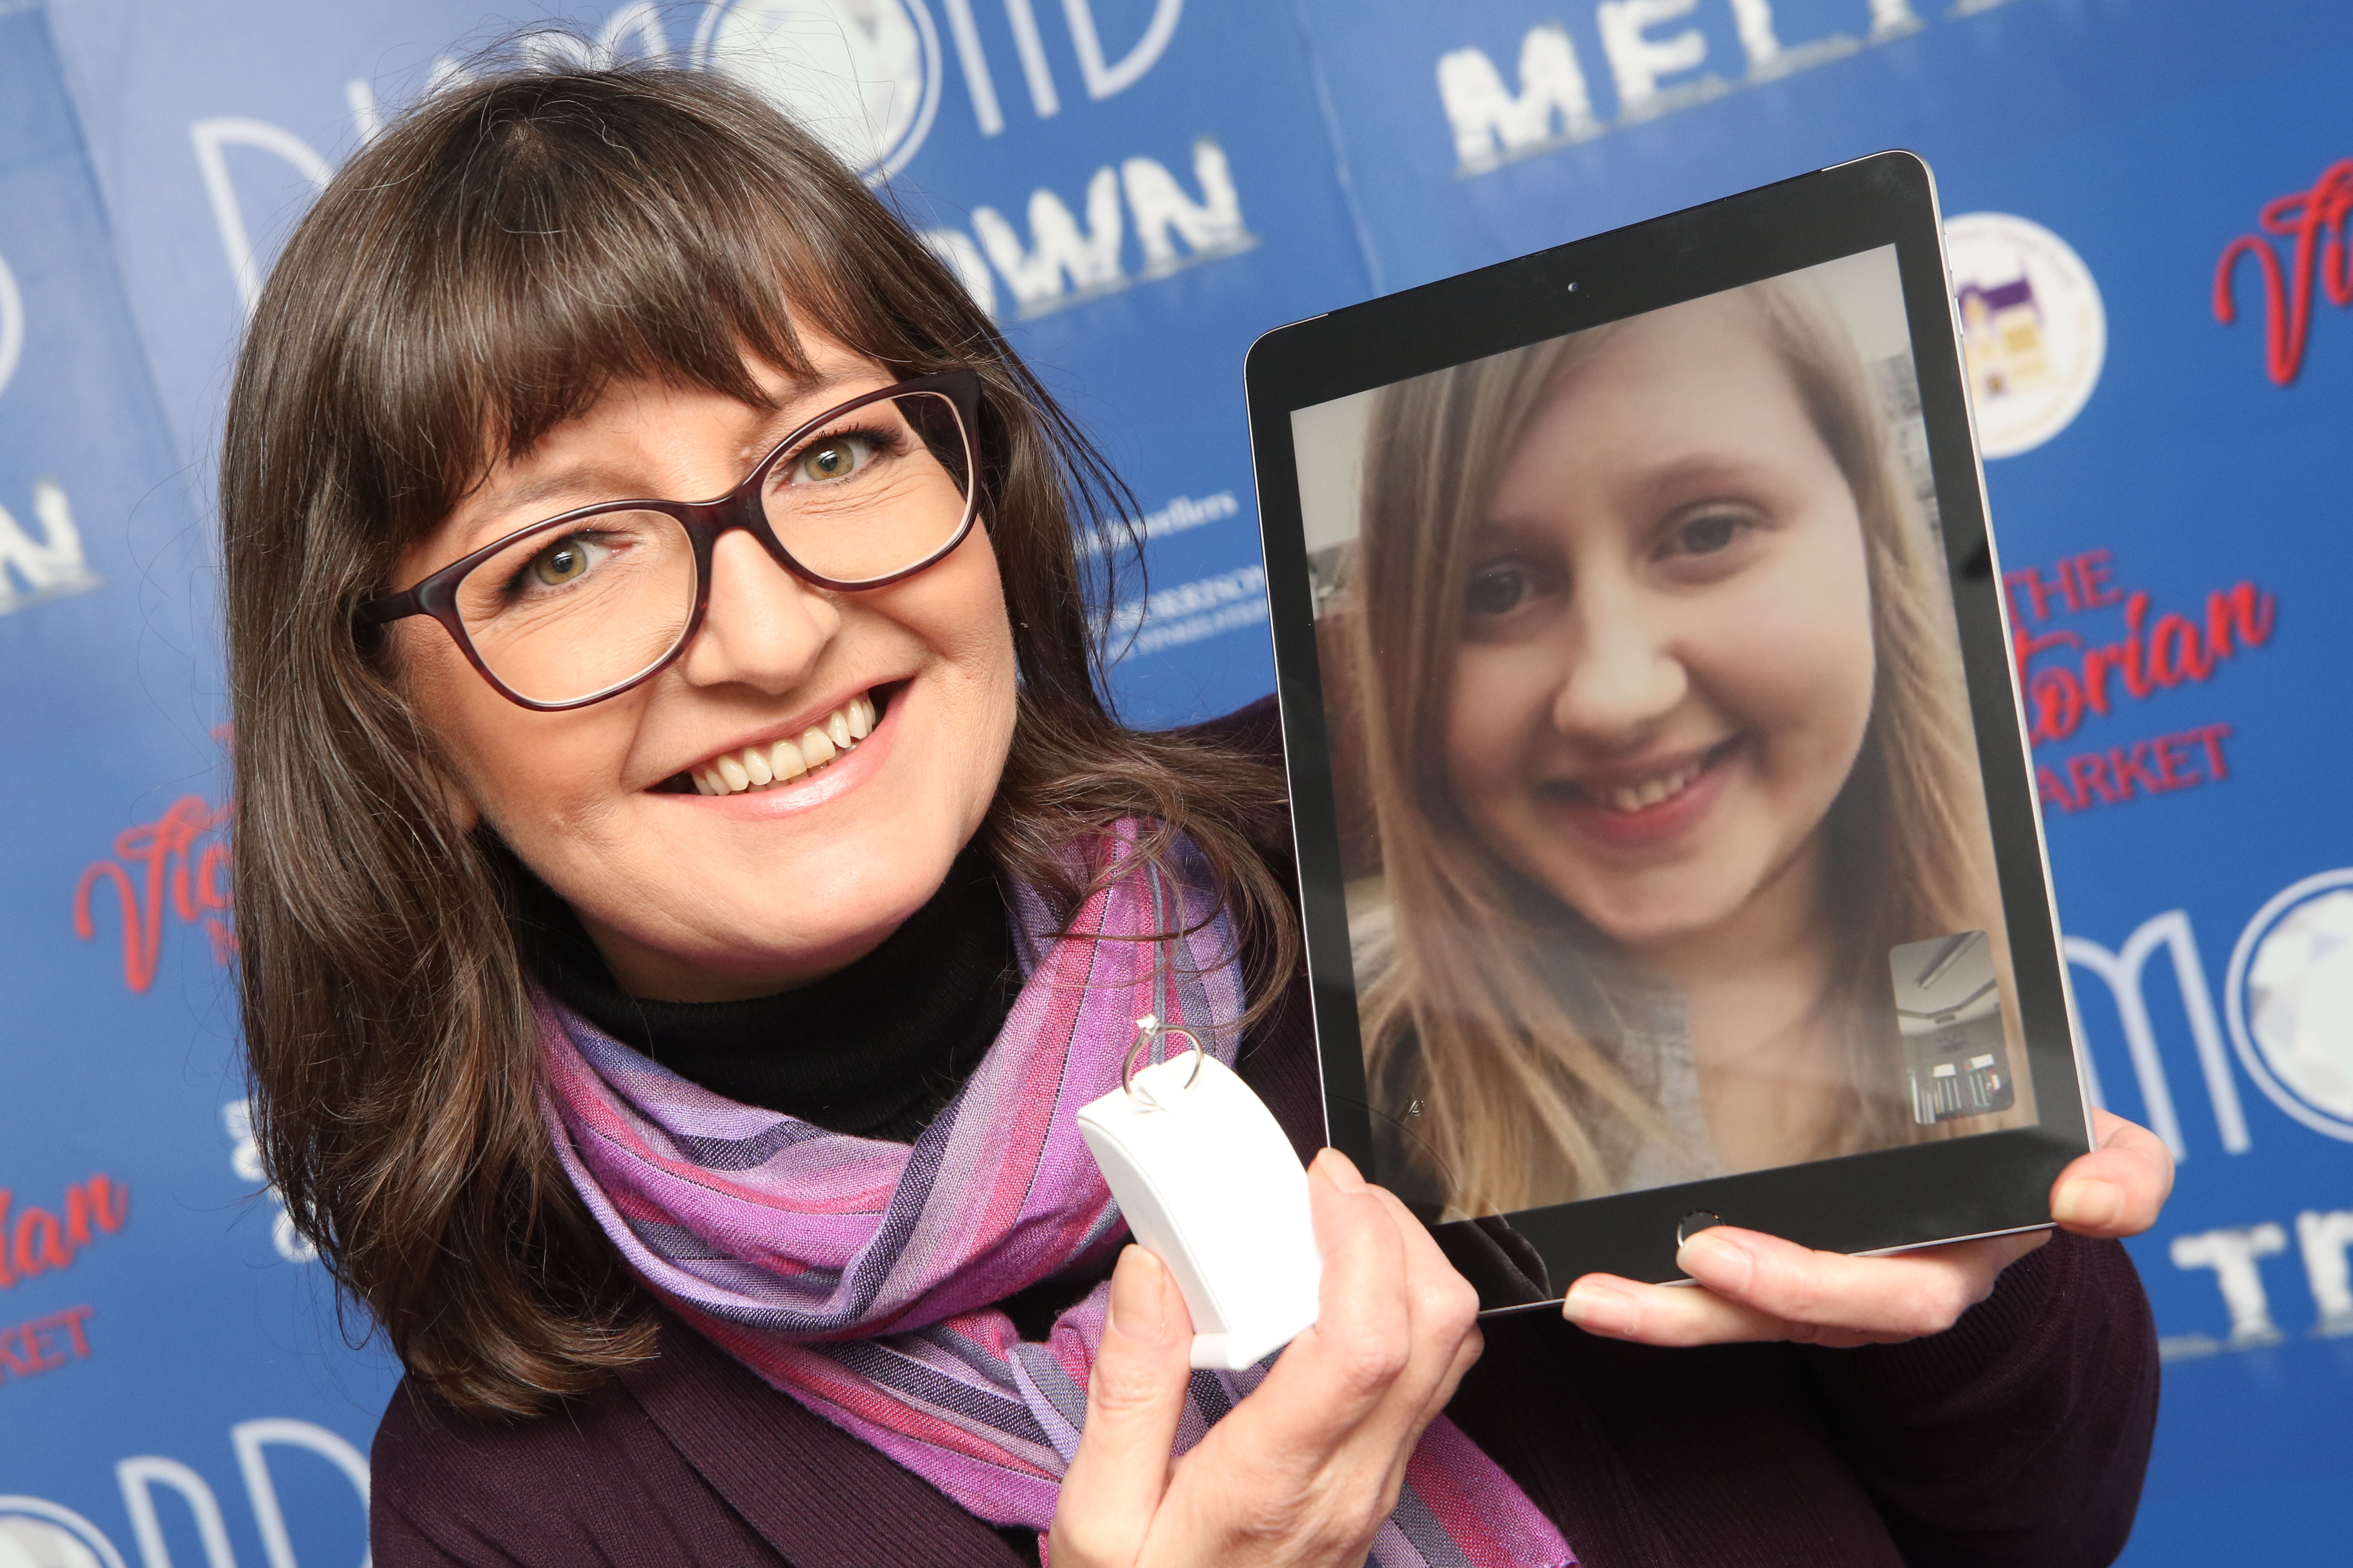 Jo Murray, manager of the Victorian Market in Inverness, who made a video call to Diamond Meltdown winner, Jessica Walker.